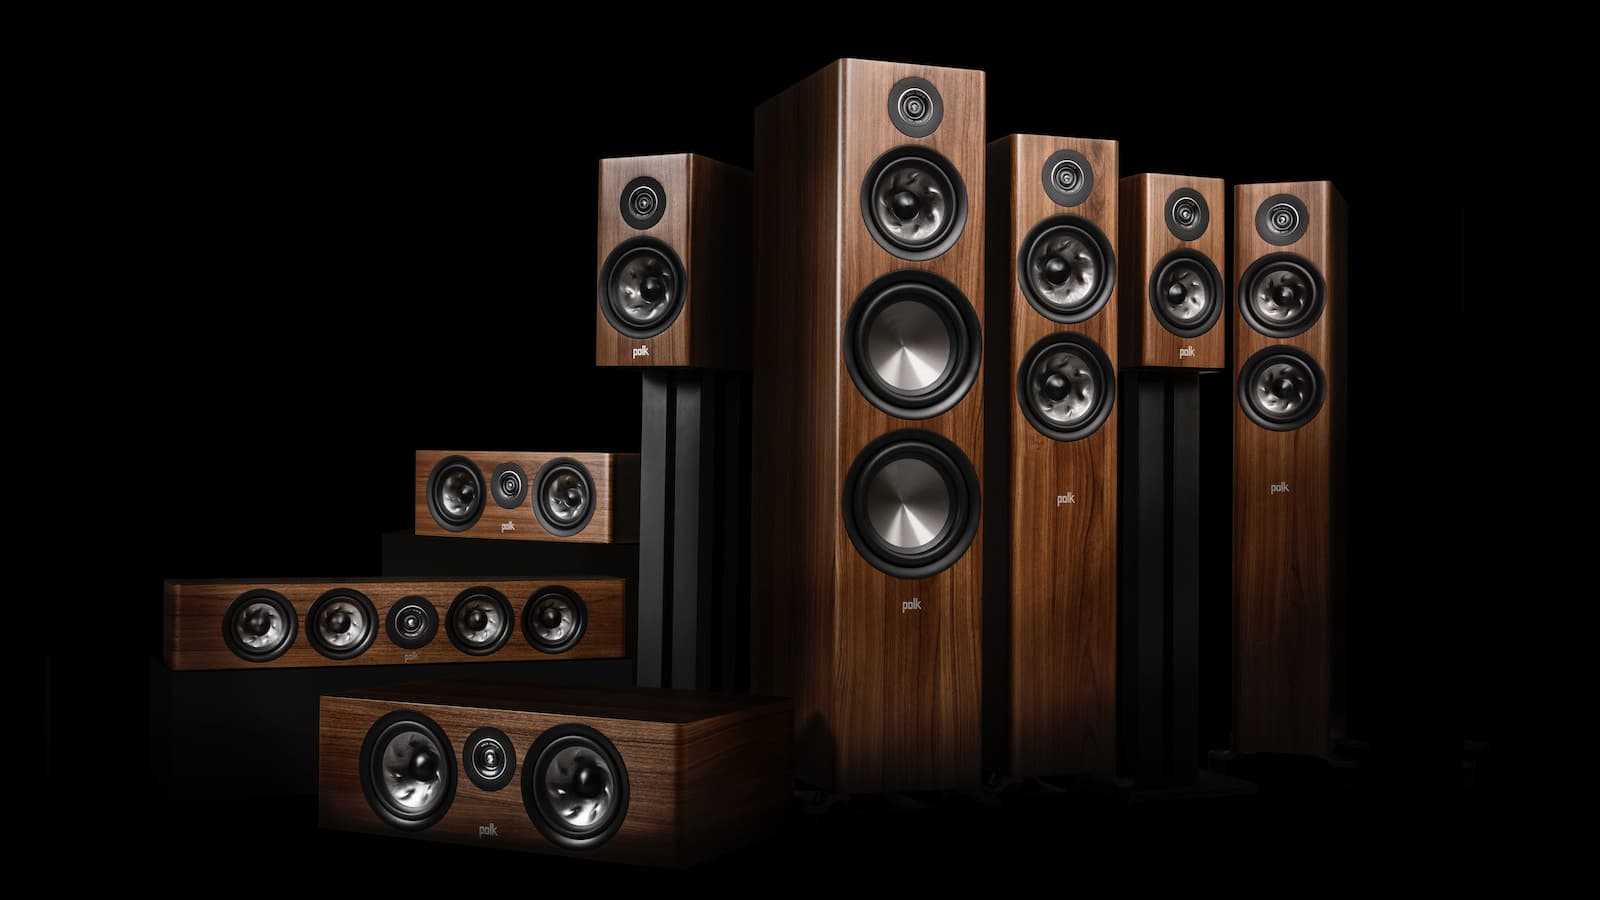 Polk Audio Reserve Series Loudspeakers in walnut woodgrain finish